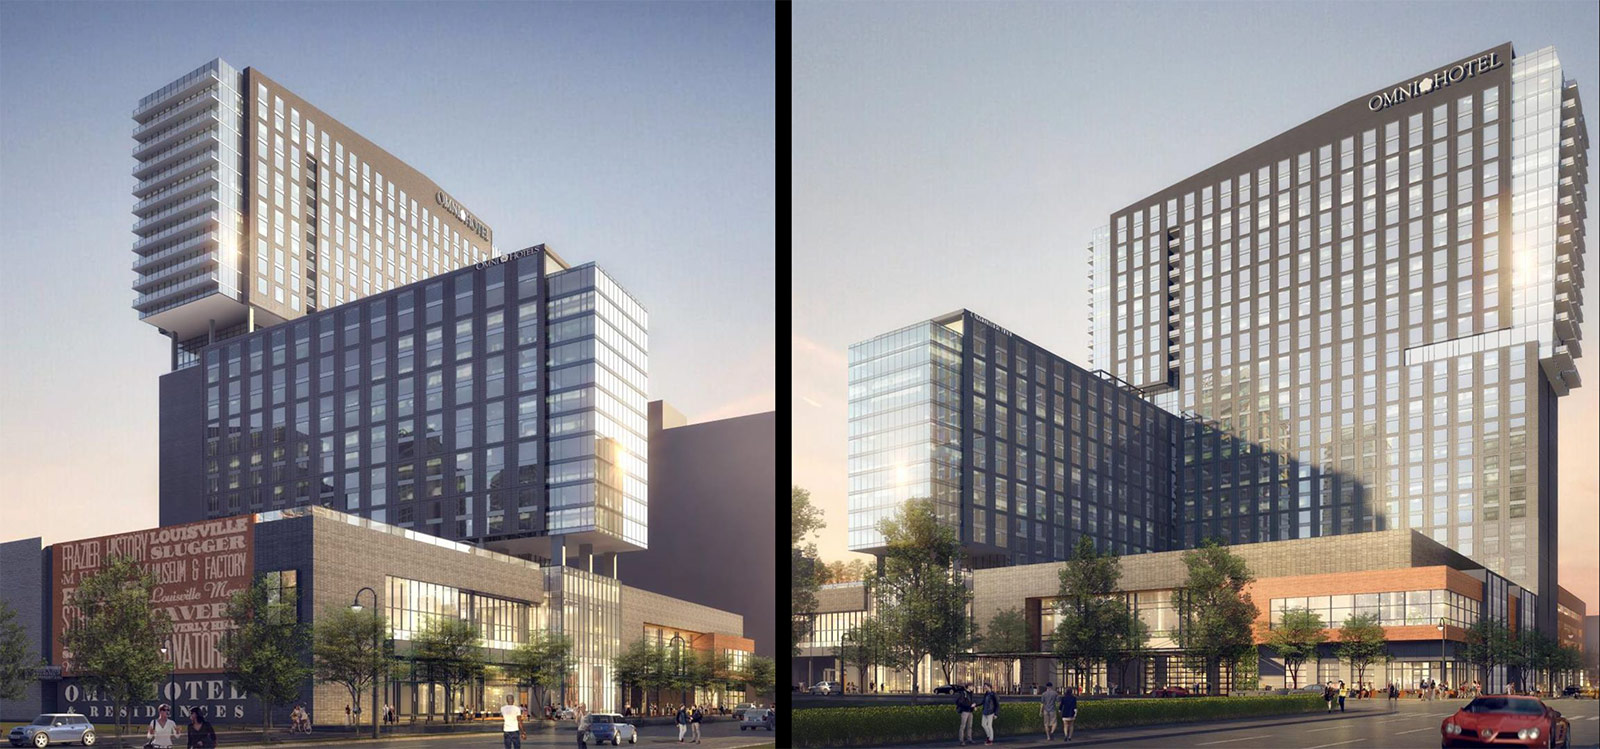 Renderings of the planned Omni Hotel & Residences. (Courtesy Omni / HKS)